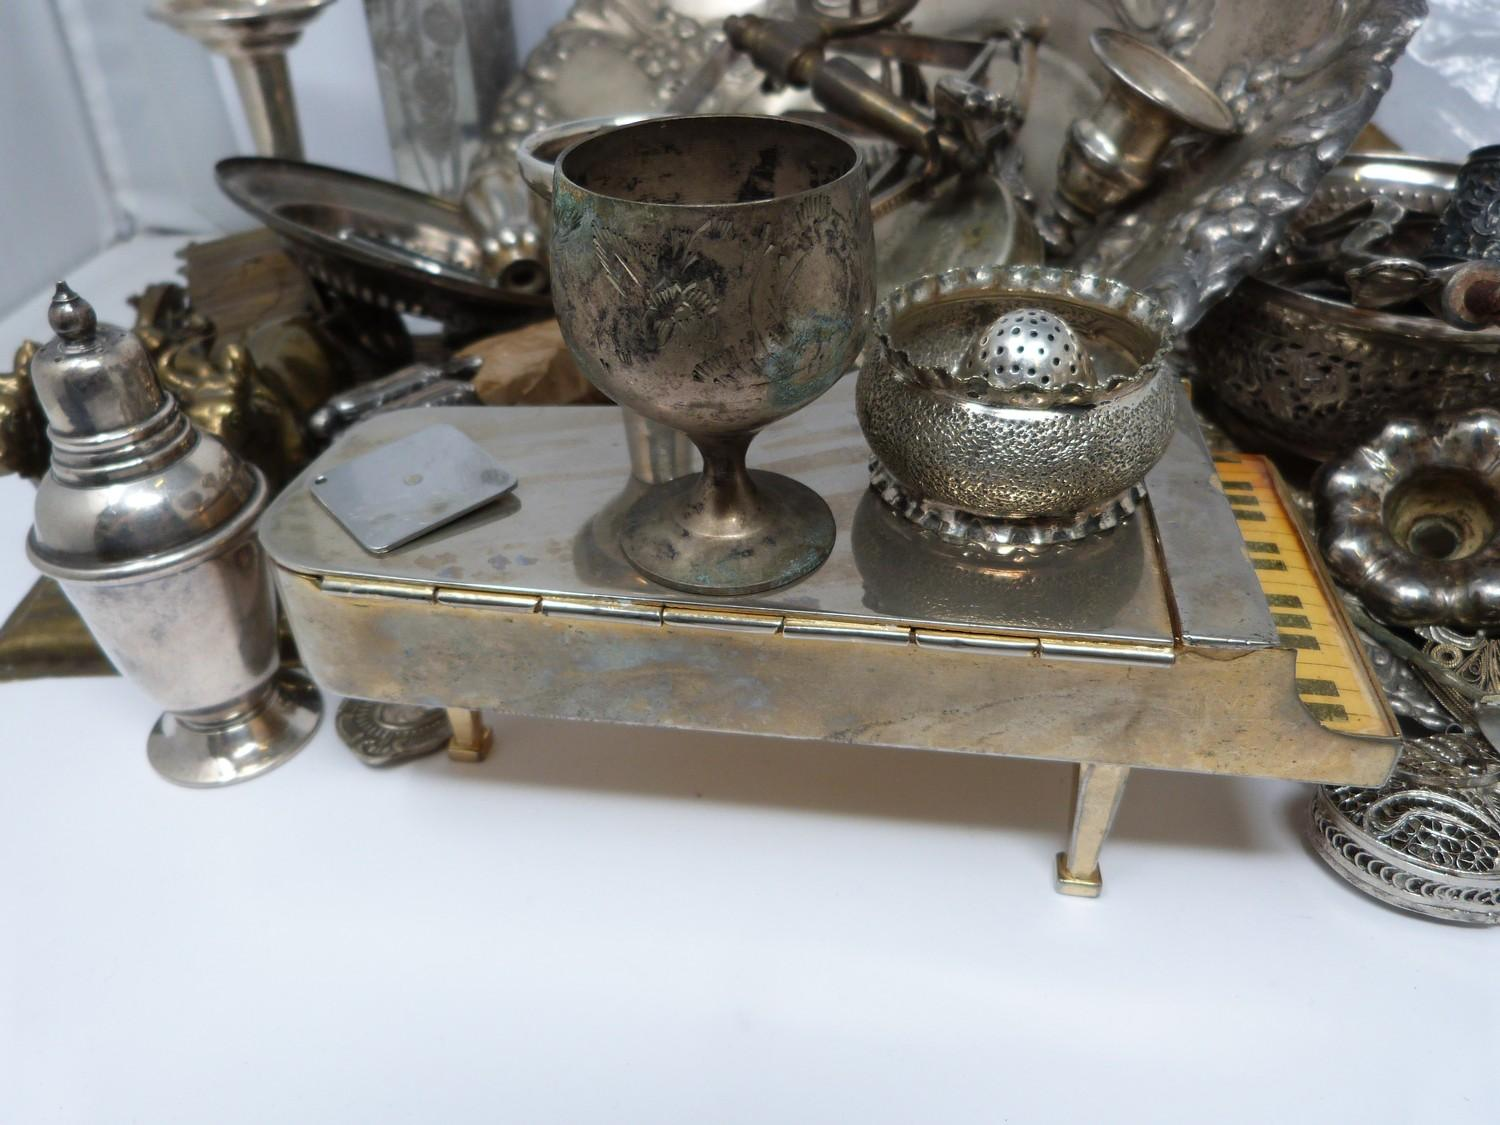 A collection of silver plate and other metalware including, trays, apostle spoons, bowls and cutlery - Image 4 of 5